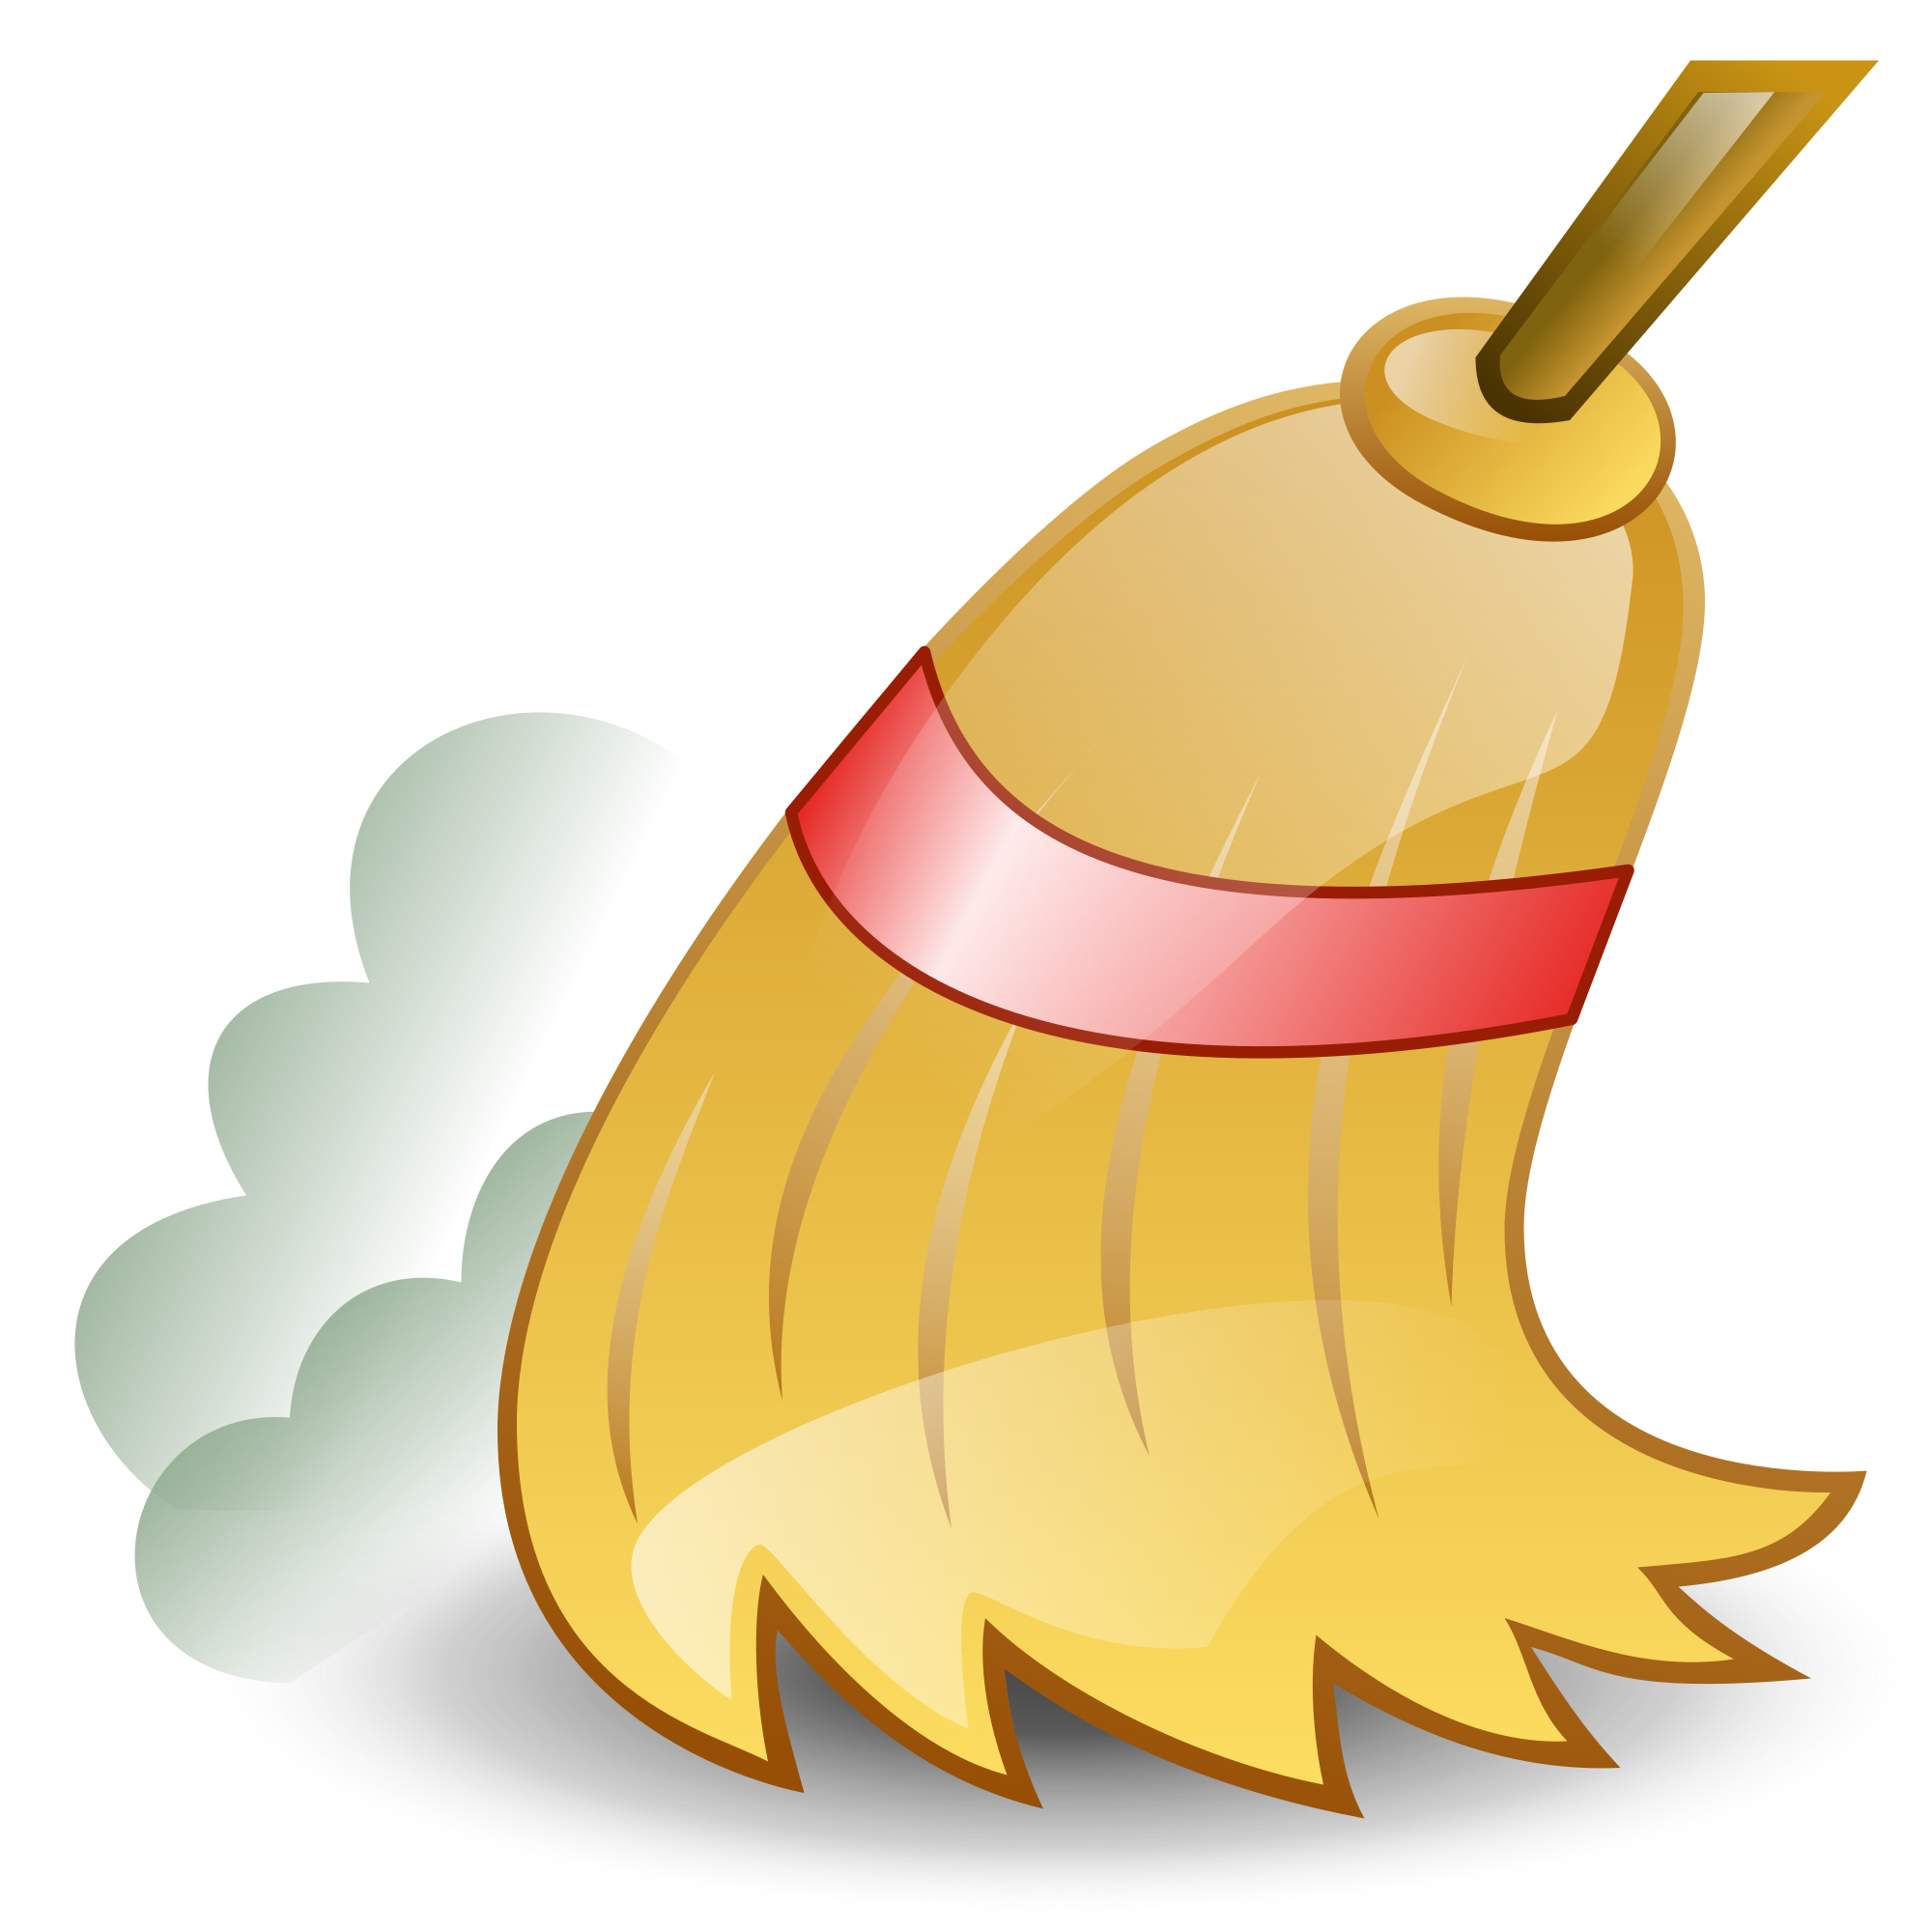 Cleaning clipart broom. Png images free download